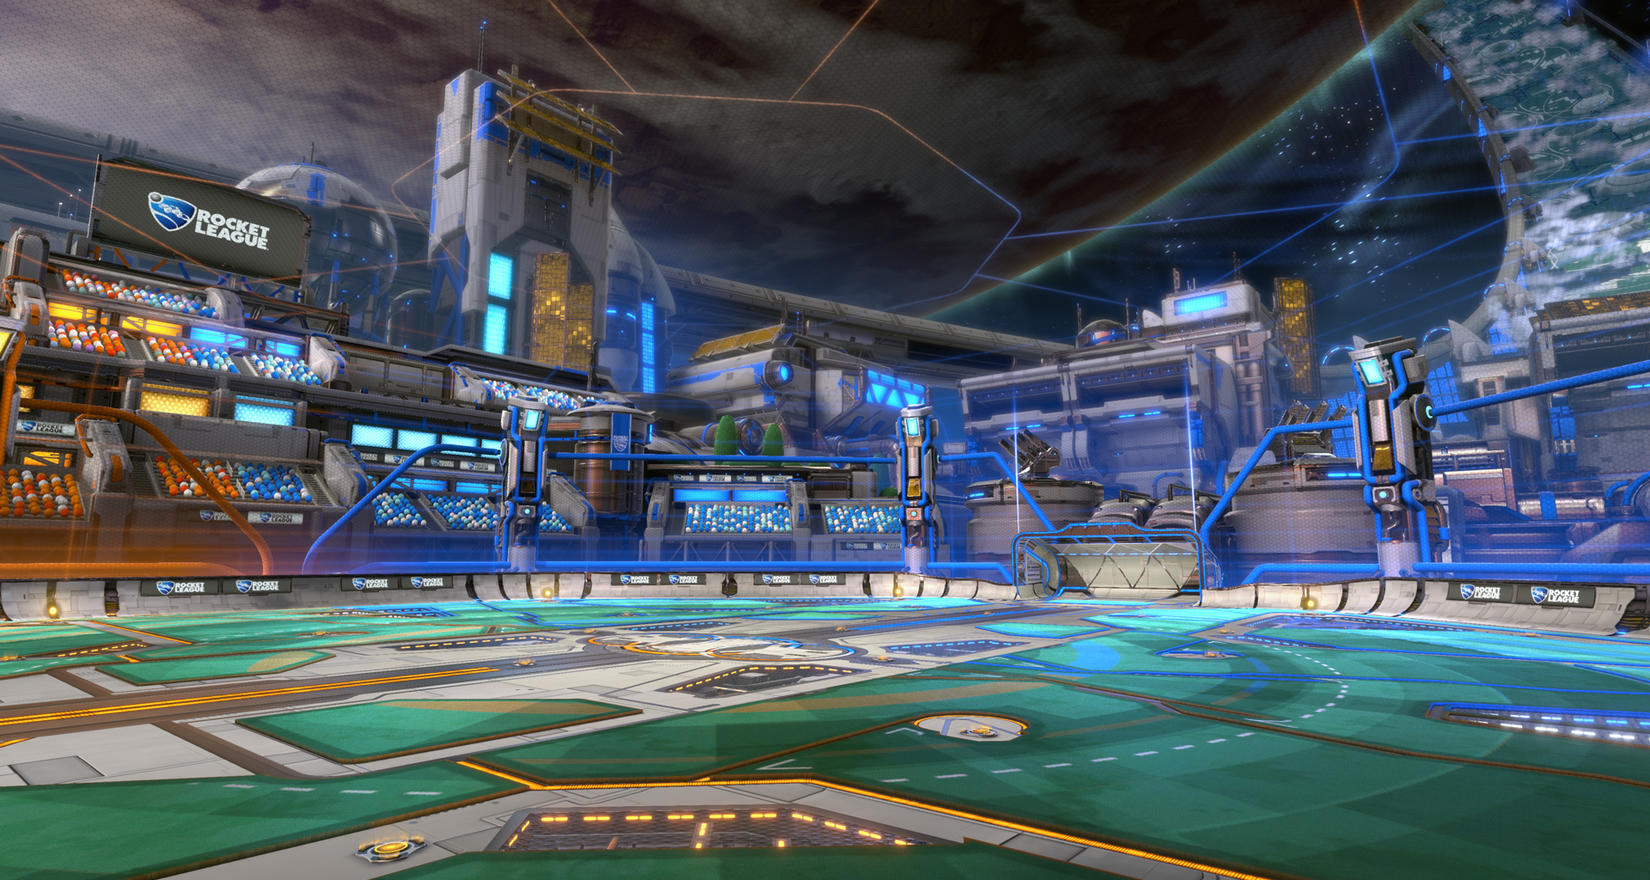 Randomly banned from matchmaking rocket league